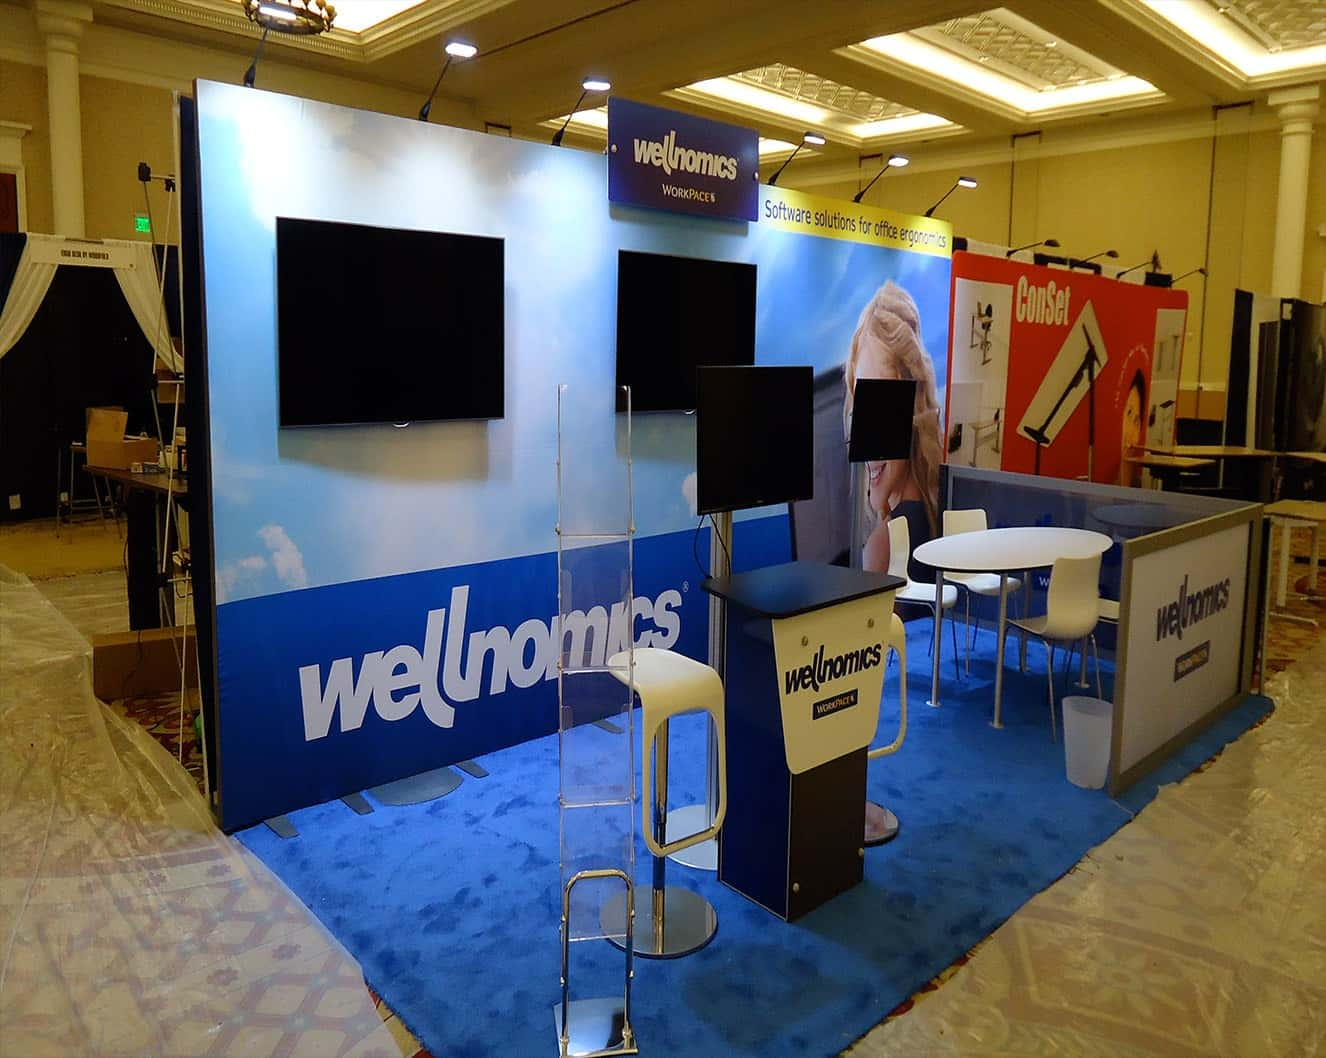 10x20 Modular Exhibition stand for Wellnomics @ National Ergonomics conference